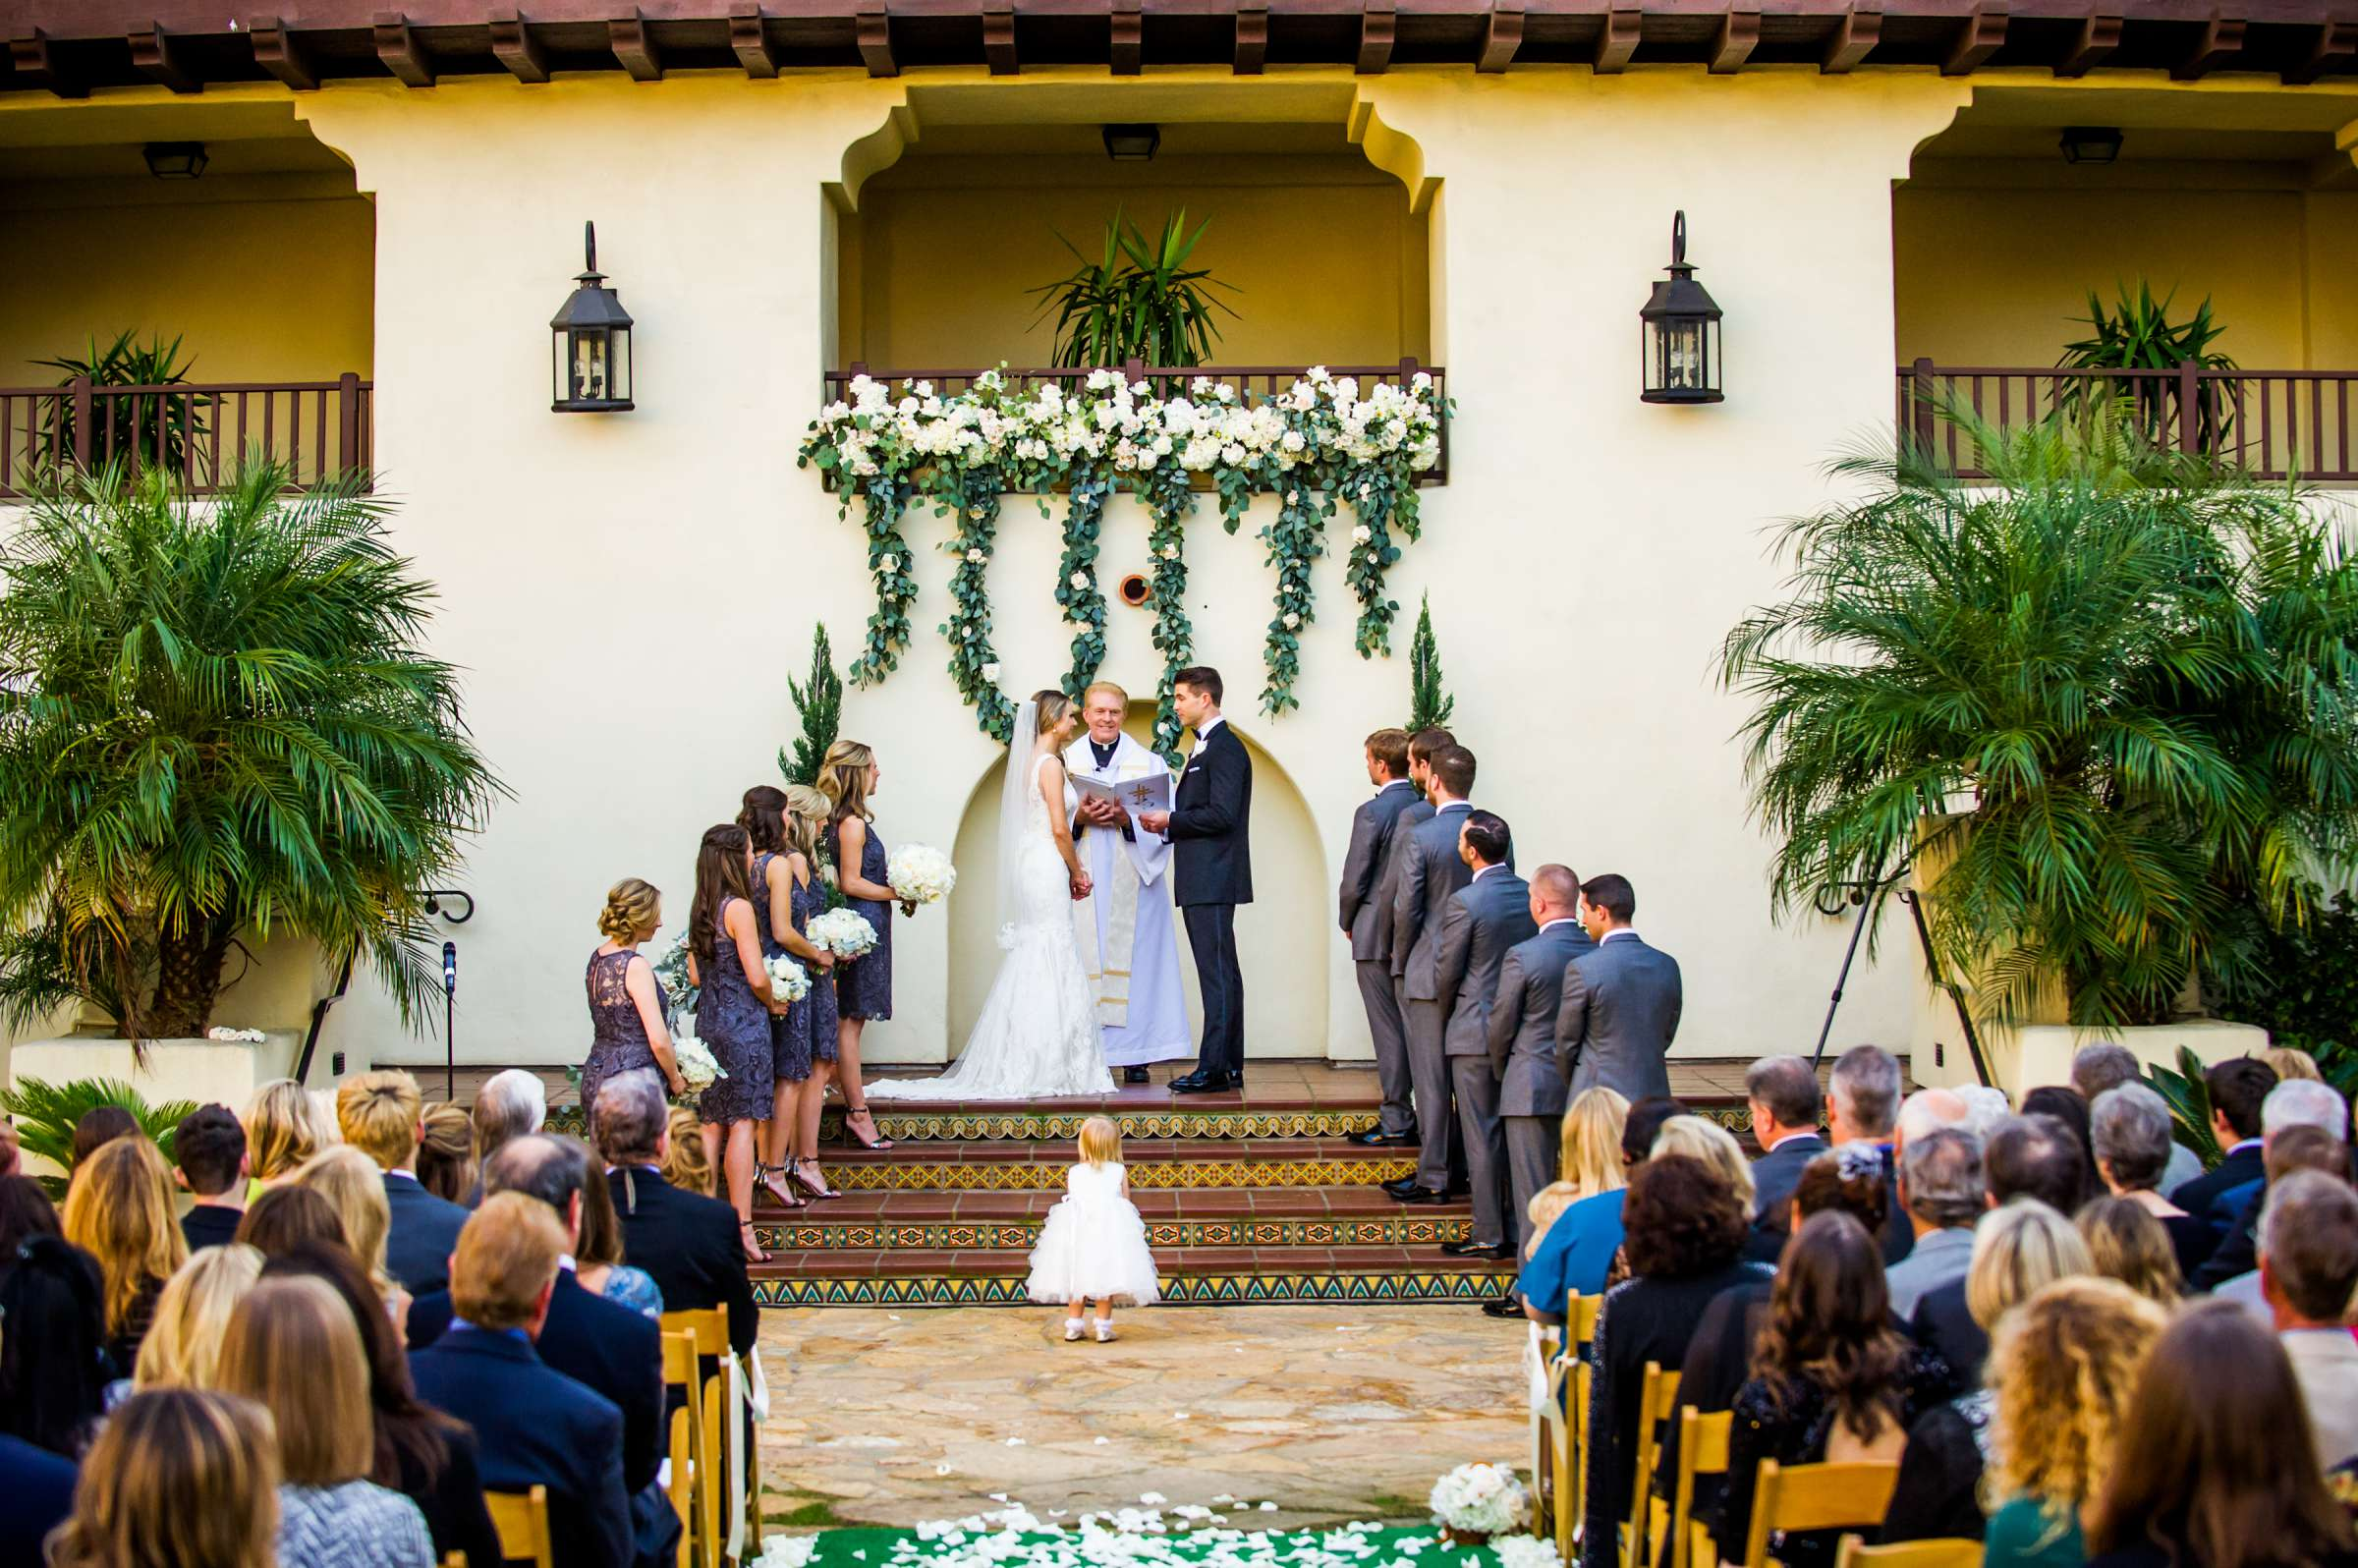 Estancia Wedding coordinated by Sweet Blossom Weddings, Erin and Shaeffer Wedding Photo #57 by True Photography